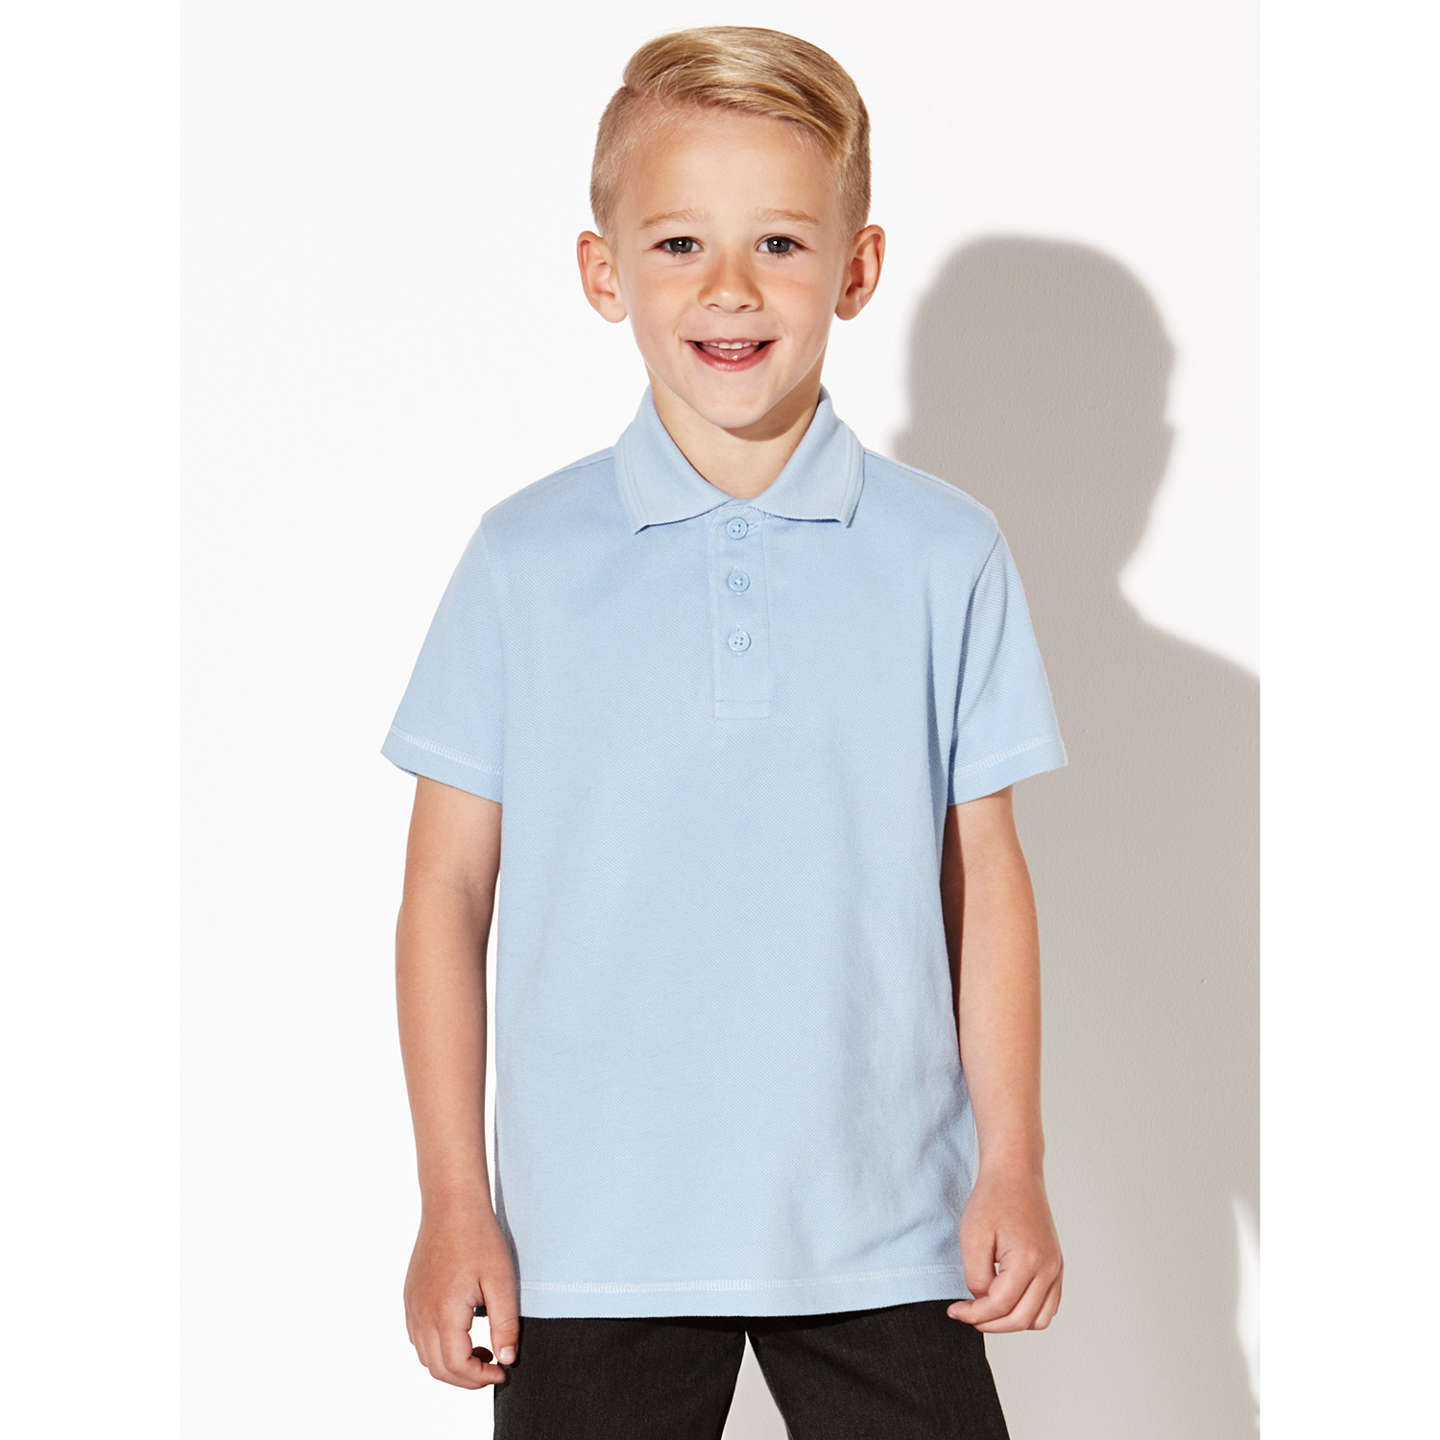 BuyJohn Lewis Unisex Pure Cotton Easy Care School Polo Shirt, Pack of 2, Blue, 3 years Online at johnlewis.com